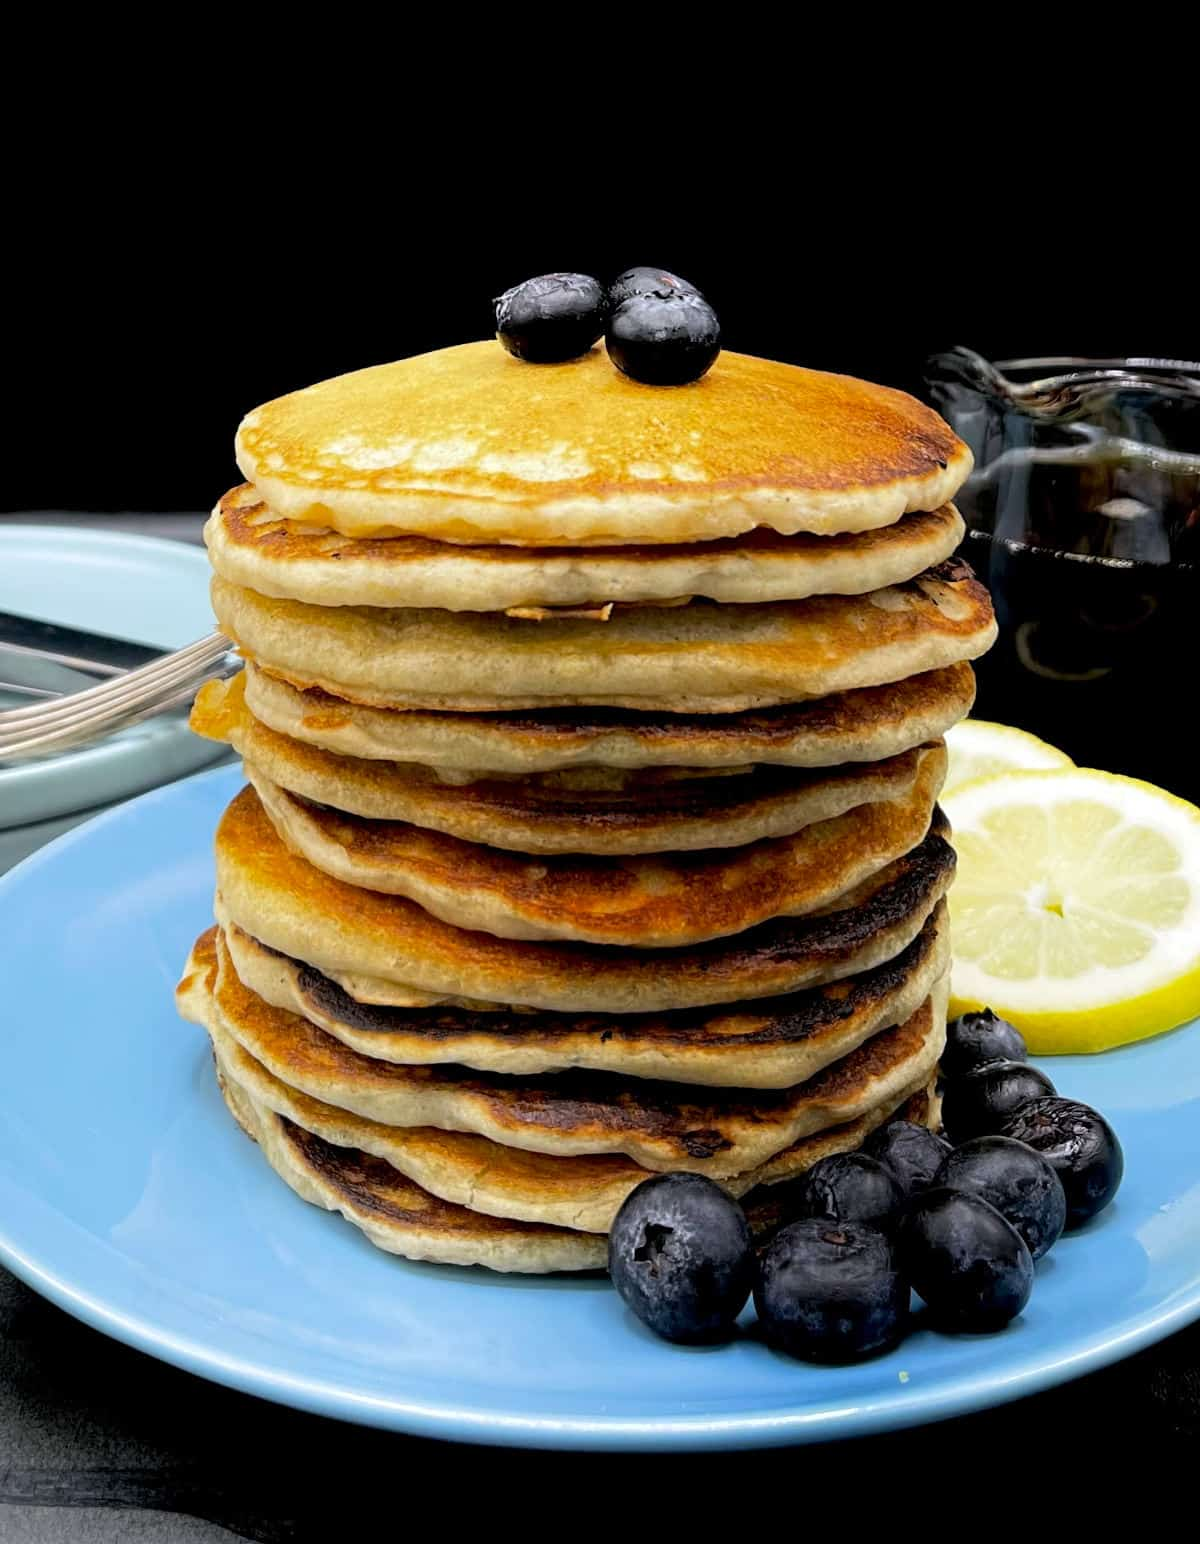 Front photo of a stack of vegan lemon pancakes with blueberries and lemon slices with maple syrup on side.